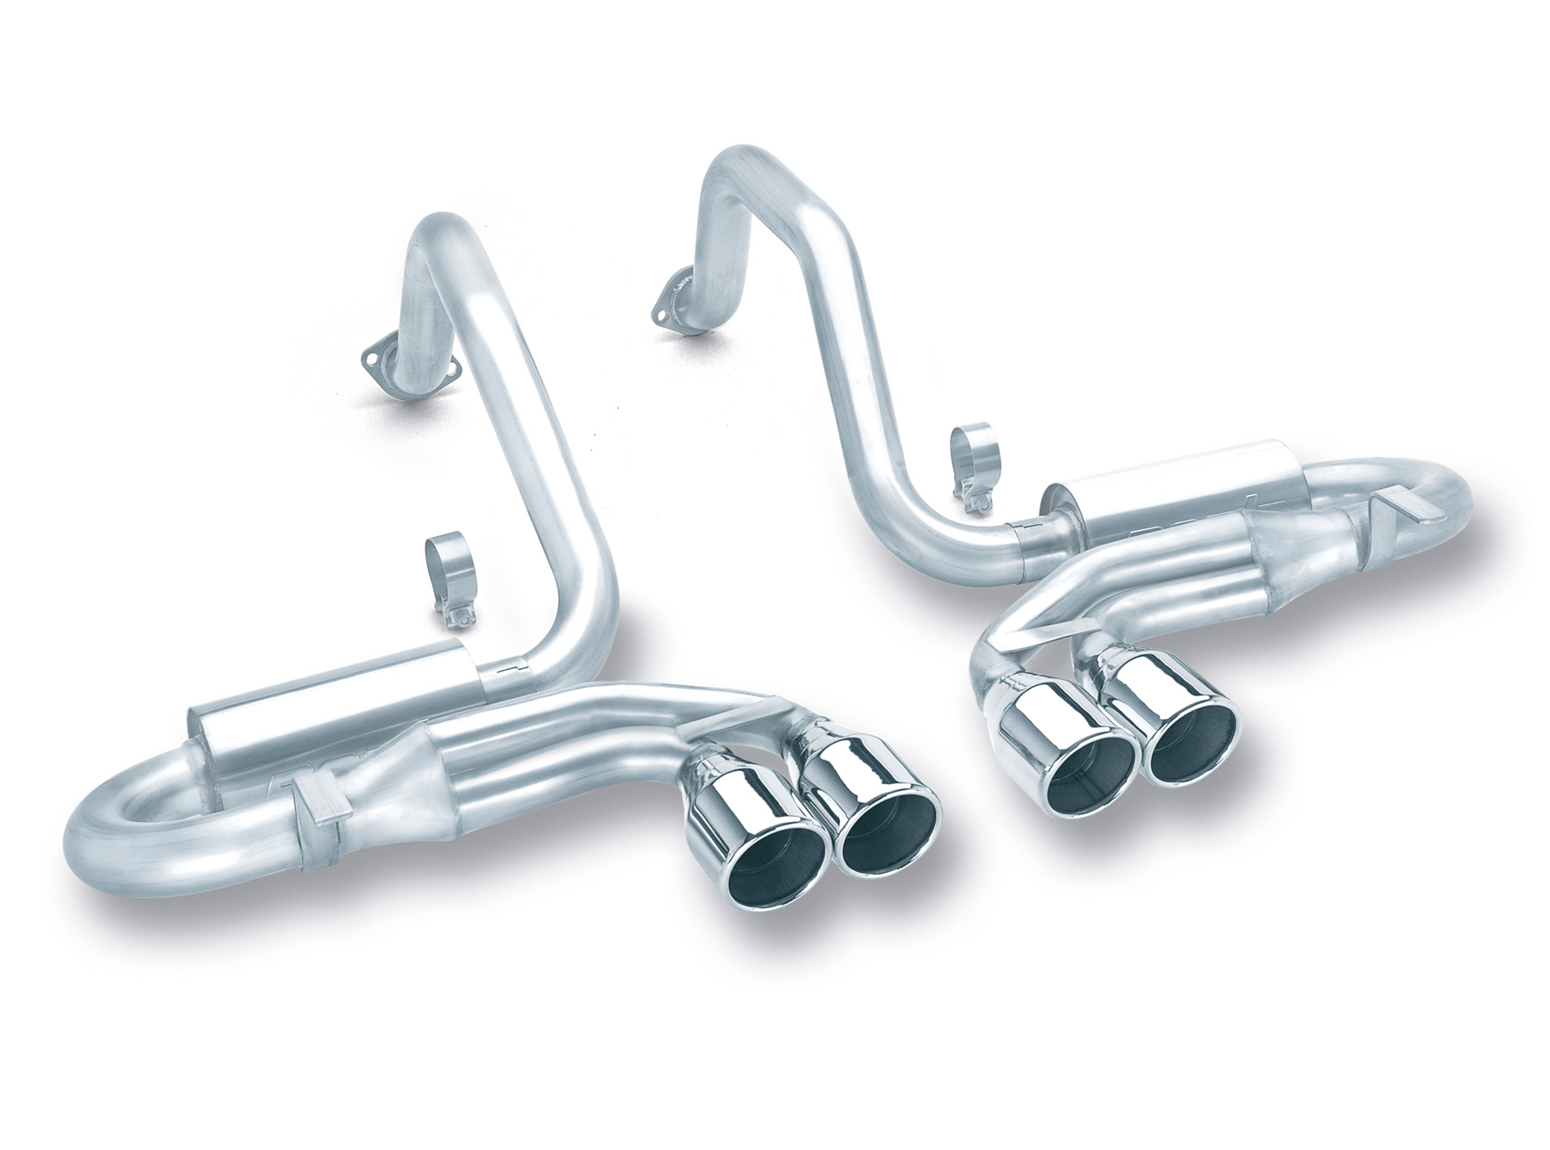 "Chevrolet Corvette C5/Z06 5.7l V8 1997-2004 Borla 2.5"", 2"" Cat-Back Exhaust System ""s-Type"" - Dual Round Rolled Angle-Cut"